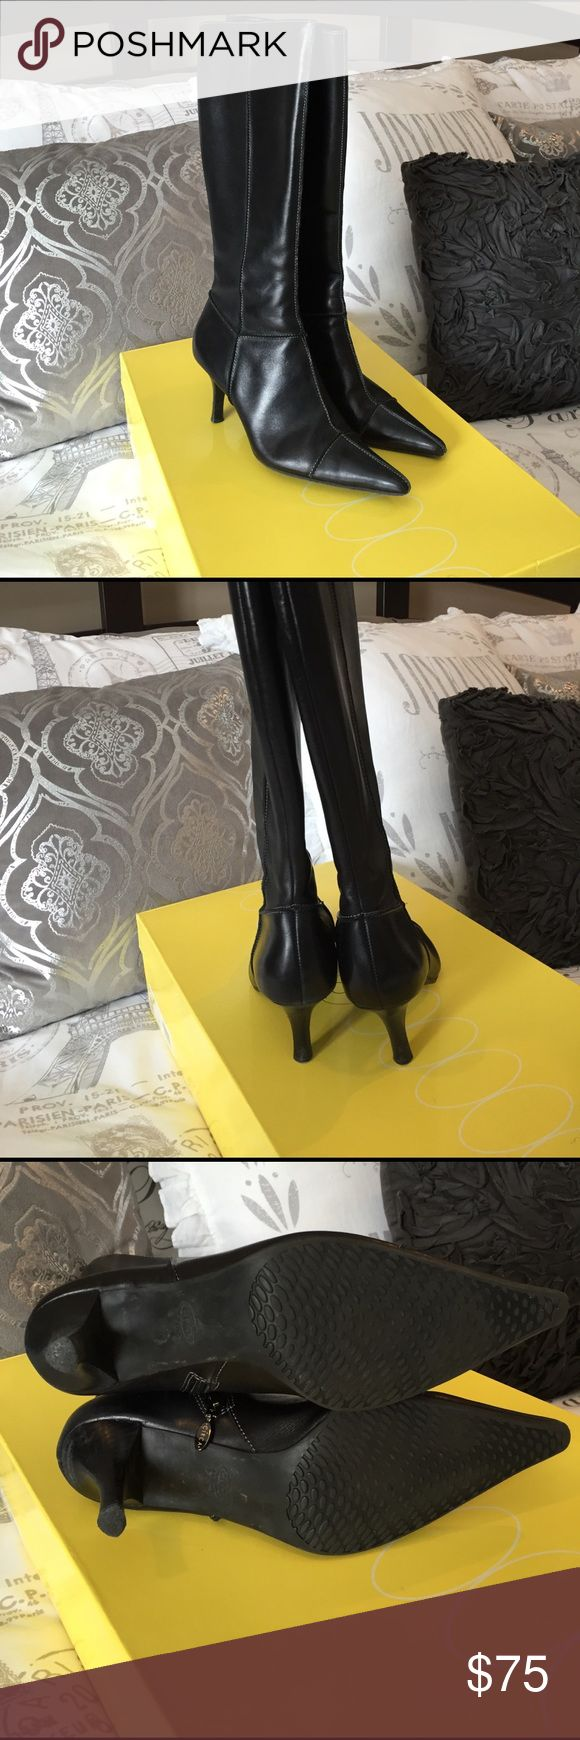 """Circa Joan & David boots EUC Circa by Joan & David boots. Gently worn. No sings of wear except on soles and one small nick in right heel as pictured. Wear on soles is minimal. 2 3/4"""" heel. Boot shaft approx 14"""". Black leather with white stitching. Joan & David Shoes Heeled Boots"""